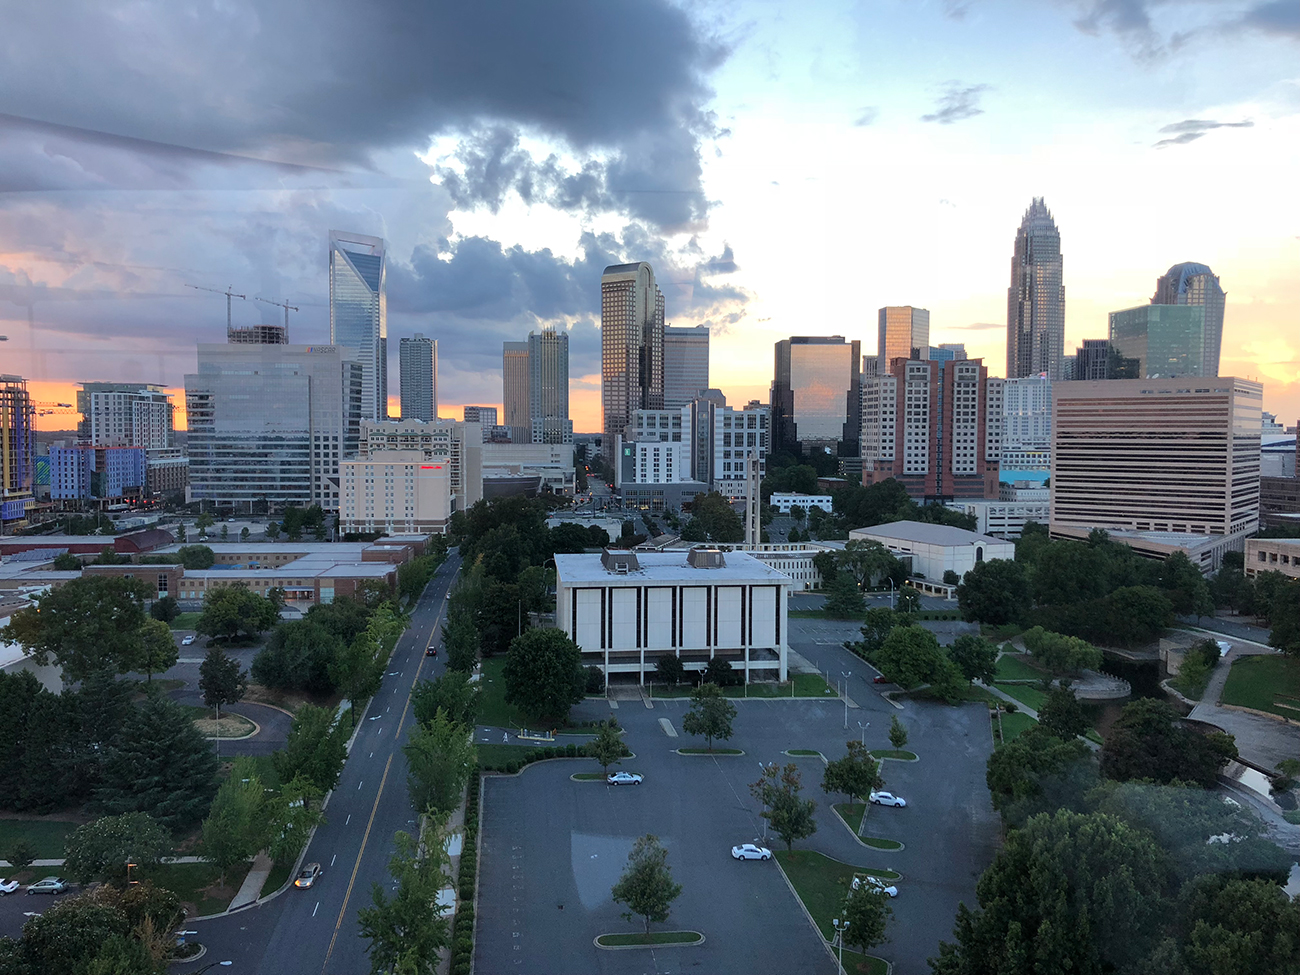 Top 9 places in Charlotte to get dumped